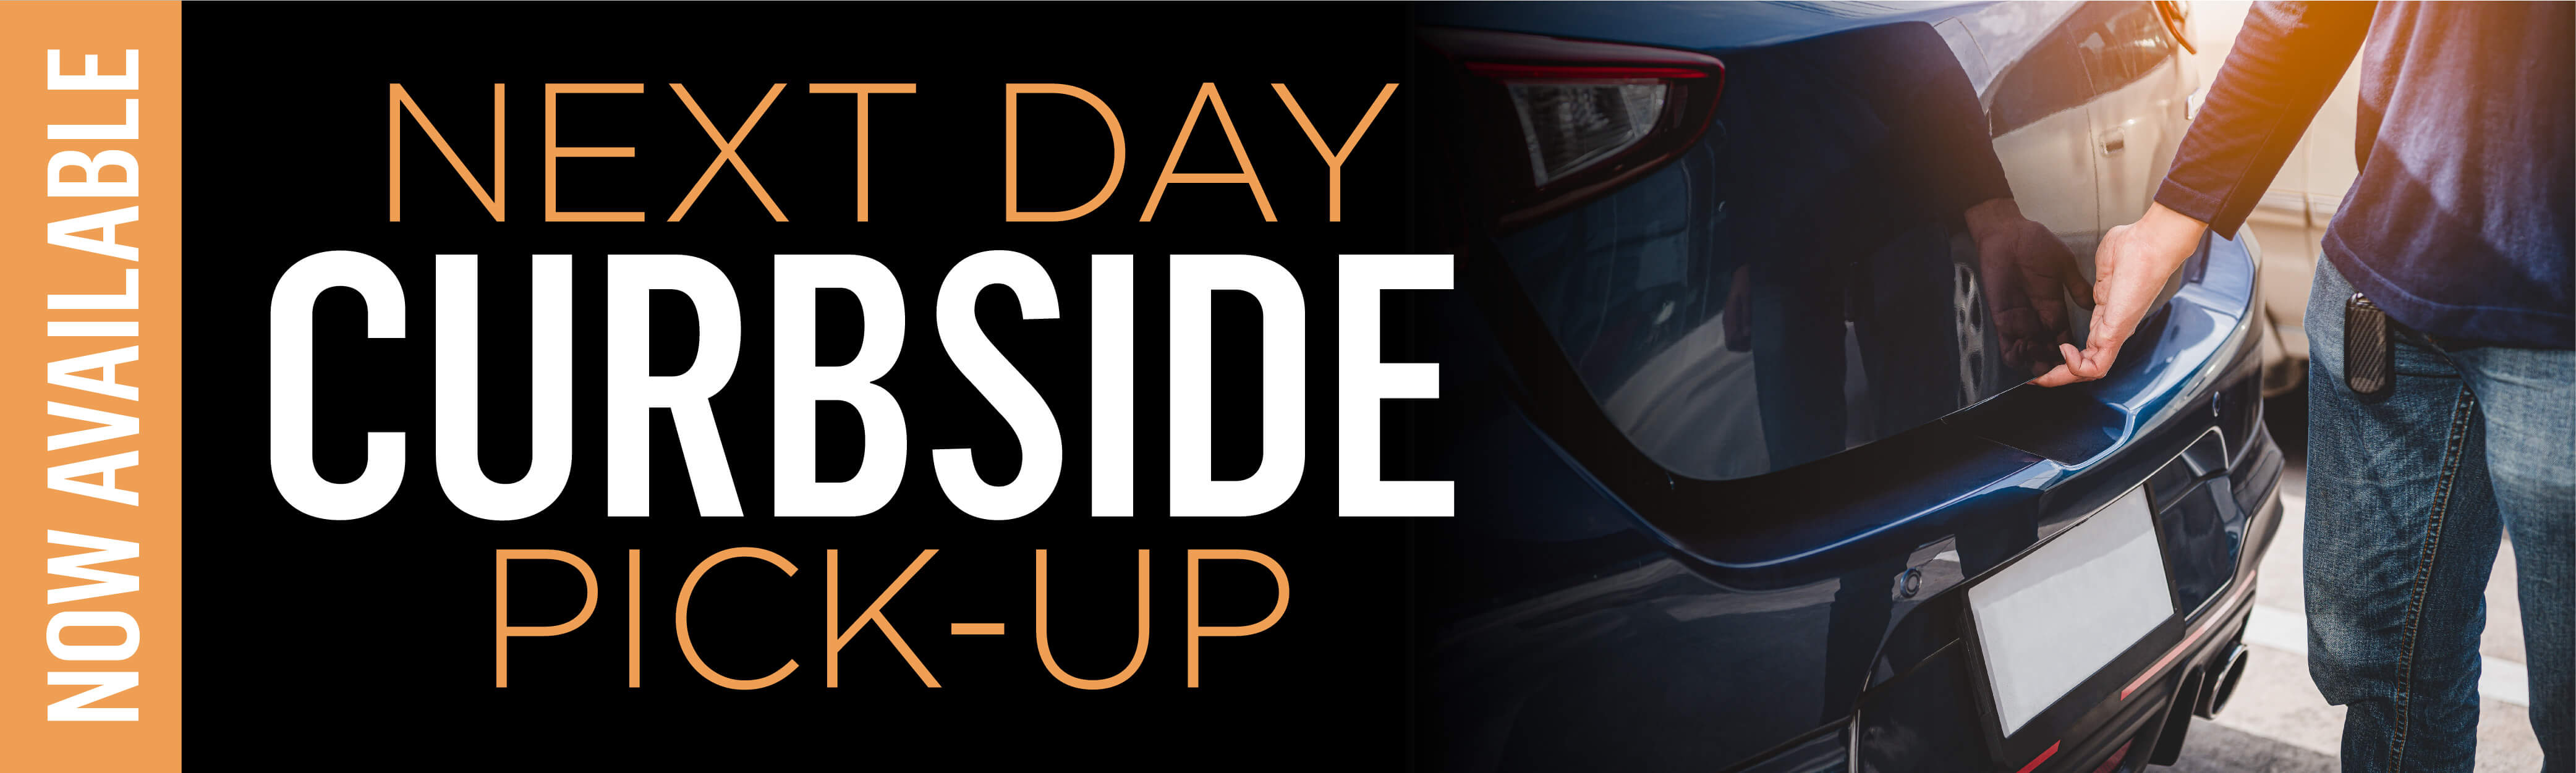 Next Day Curbside PICKUP SLIDER EN